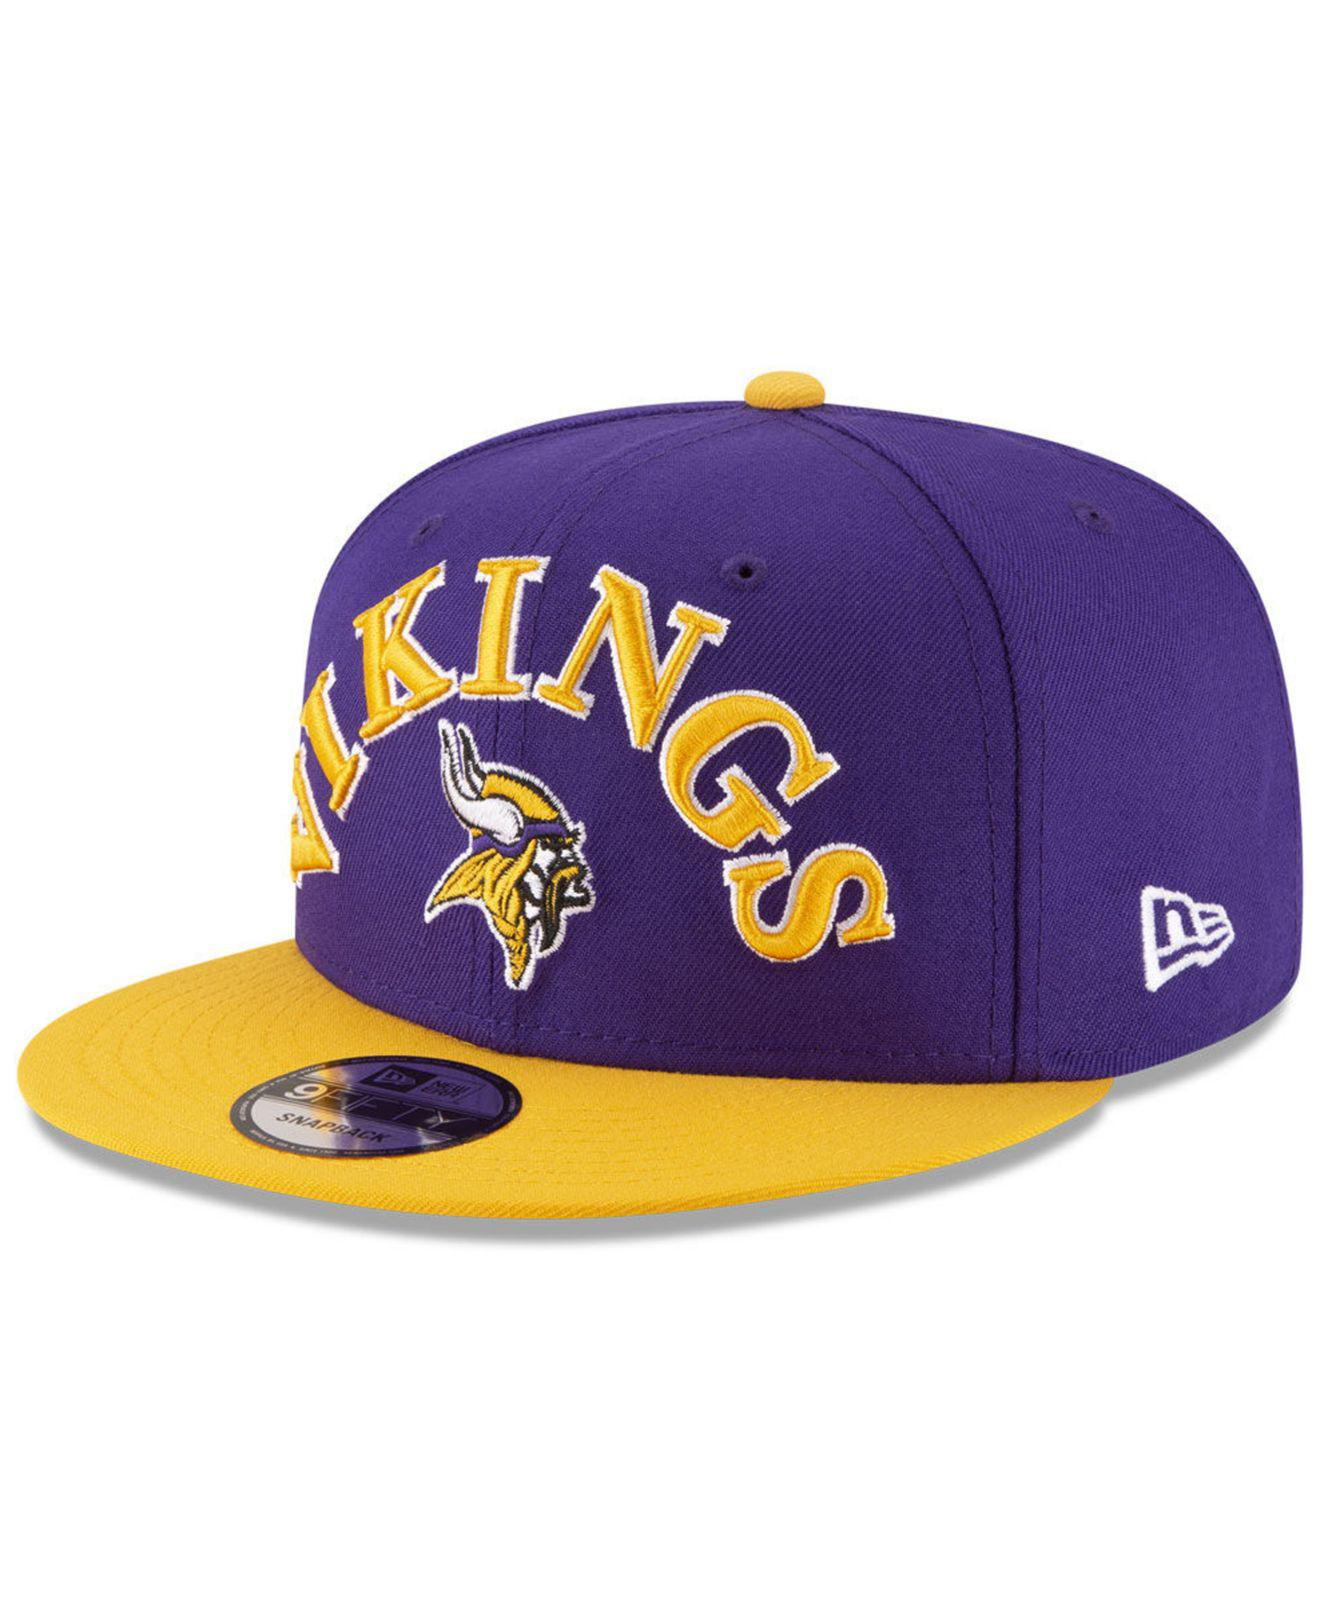 release date: a0552 aff41 KTZ. Men s Purple Minnesota Vikings Retro Logo 9fifty Snapback Cap